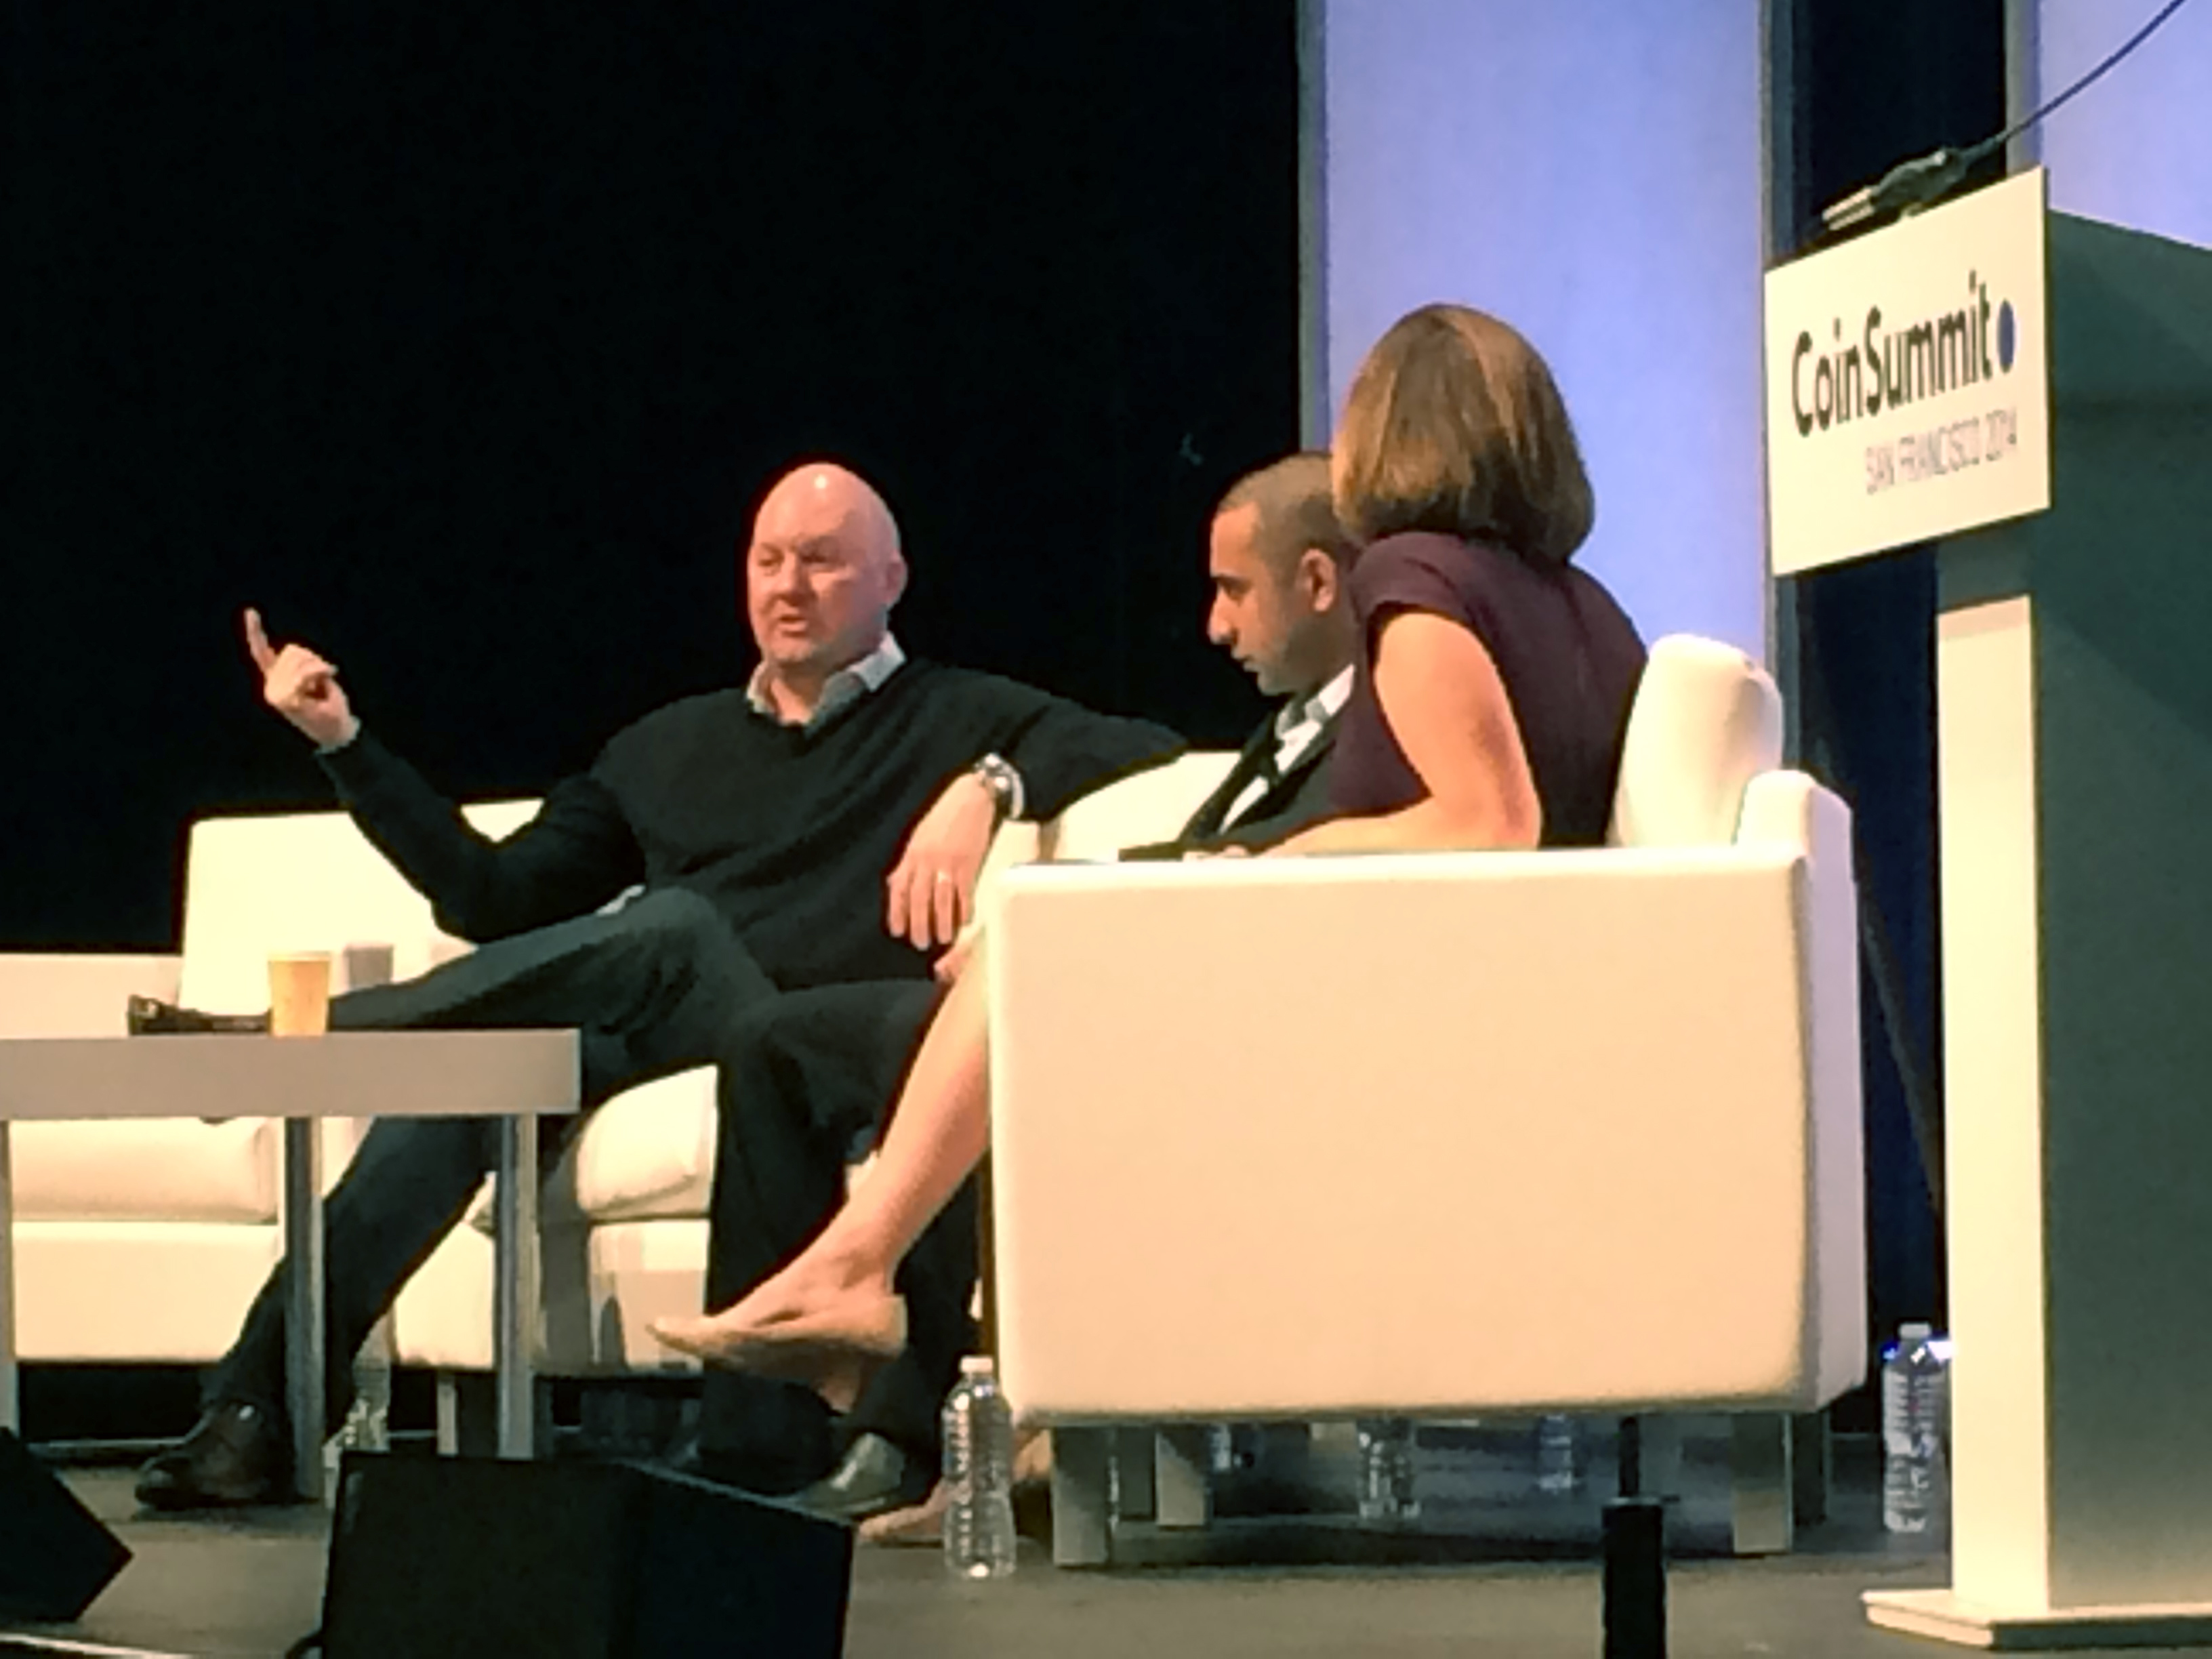 Marc Andreessen with Balaki Srinivasan and moderator Kashmir Hill from Forbes. Photo by Biz Carson/Gigaom